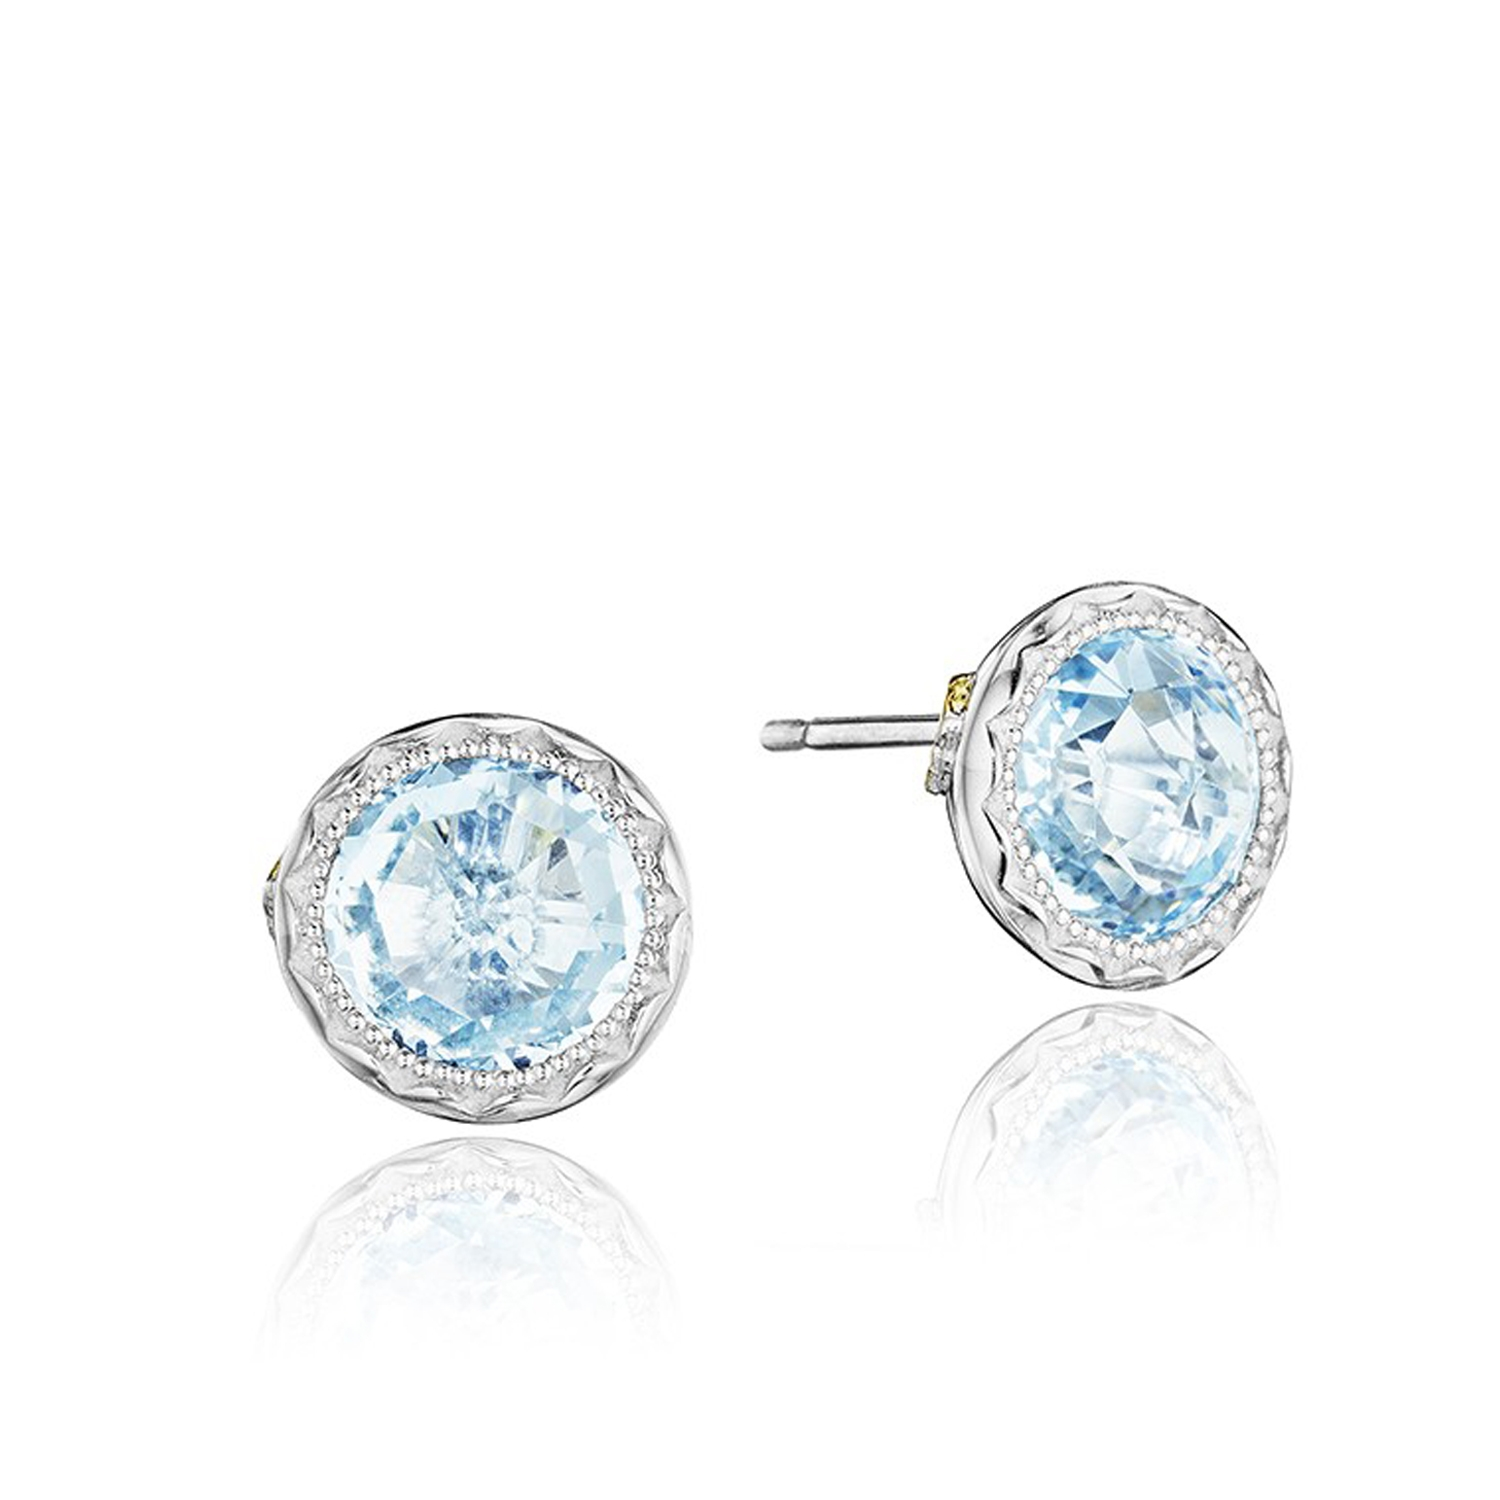 Tacori SE24102 Island Rains Earrings